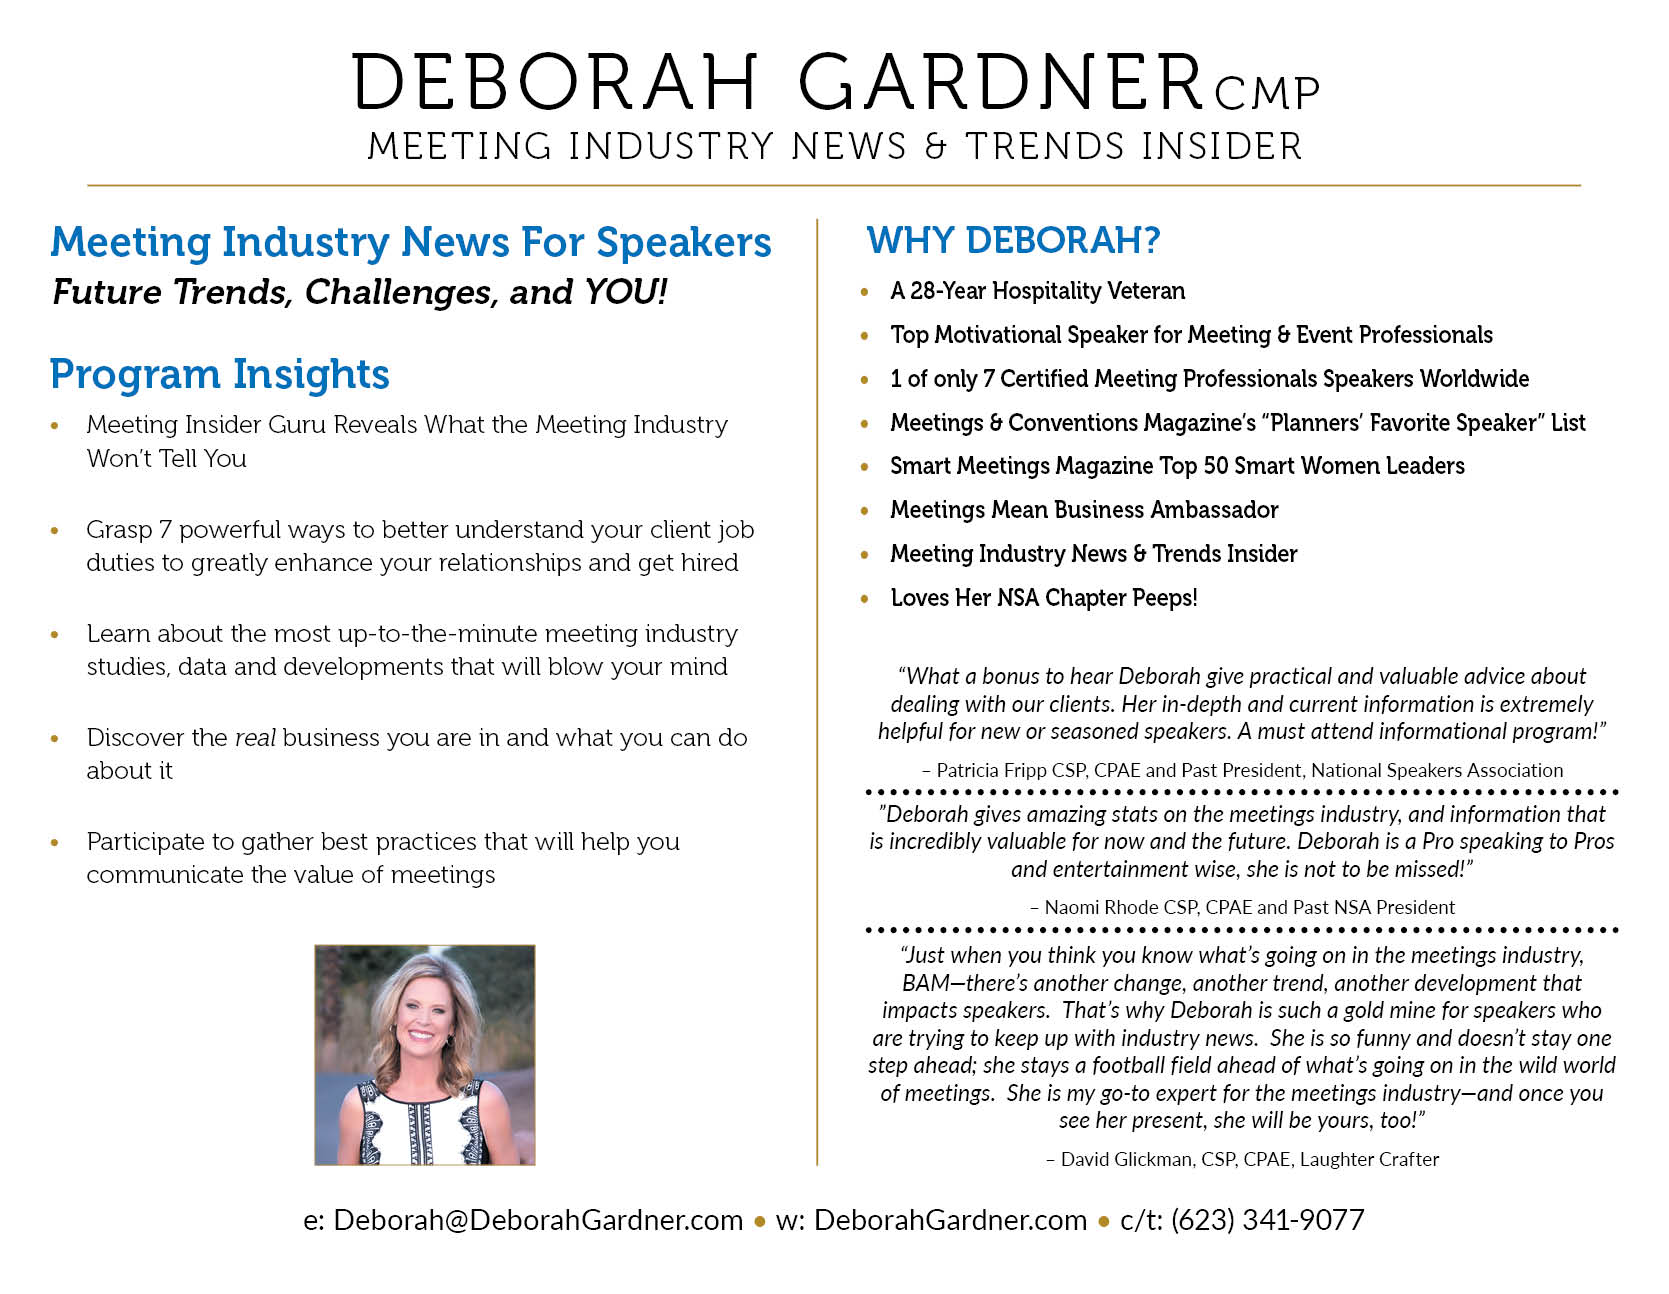 Deborah Gardner CMP new one sheet back side April 2019